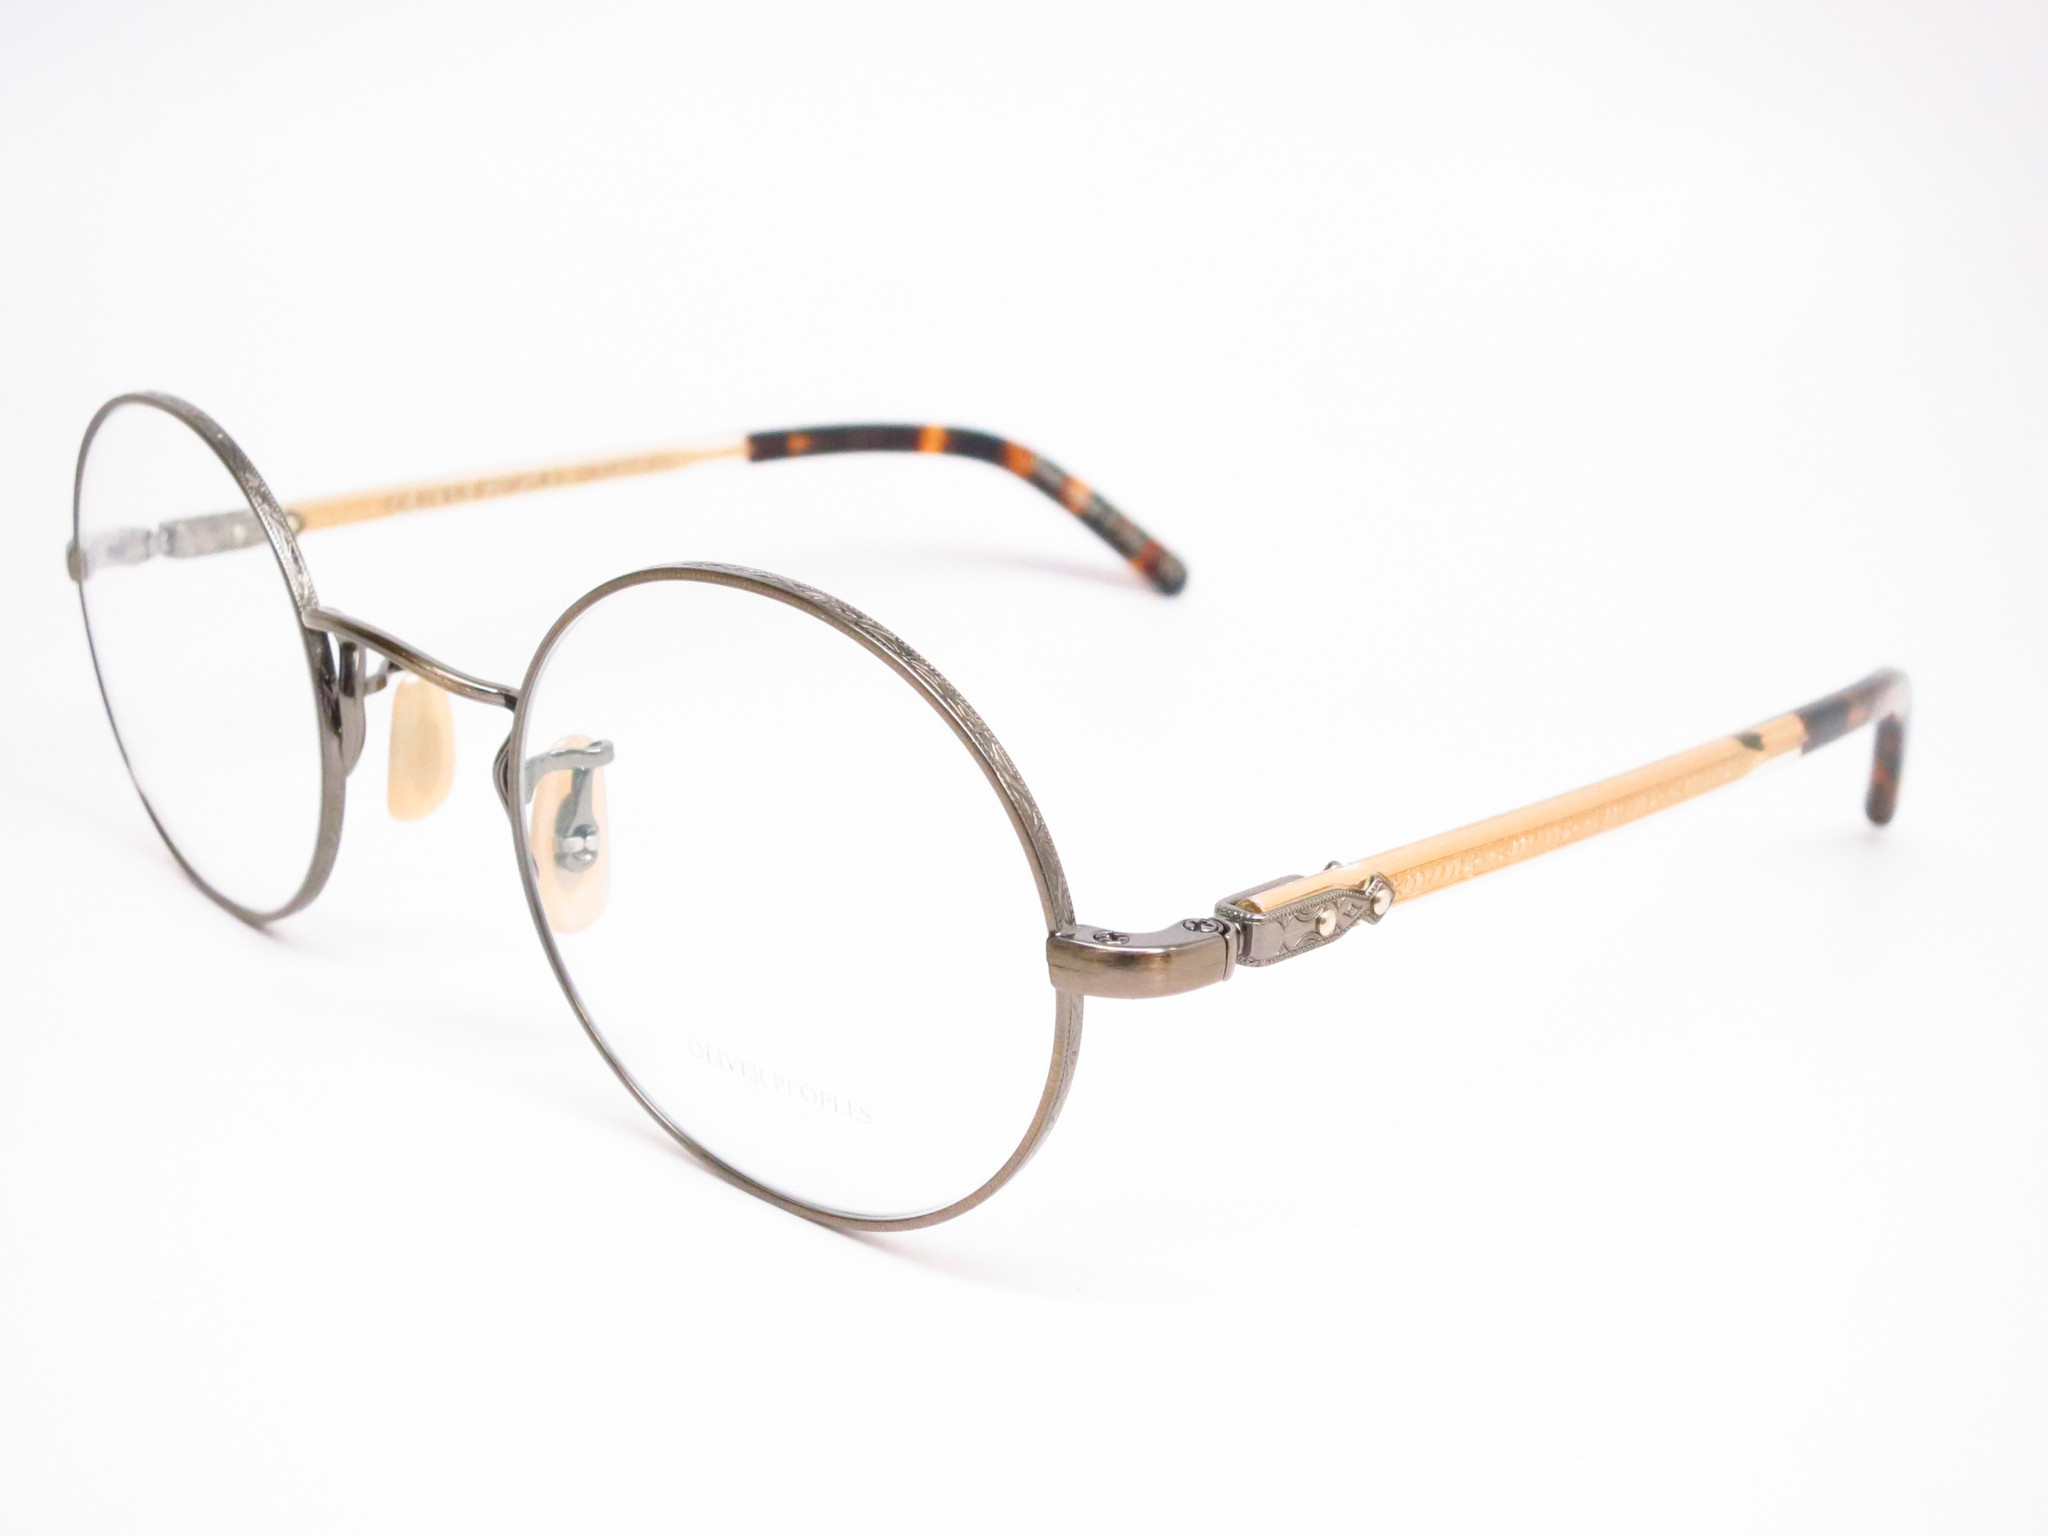 bff84a4e282 Oliver Peoples Overstreet OV 1190 Eyeglasses - Eye Heart Shades